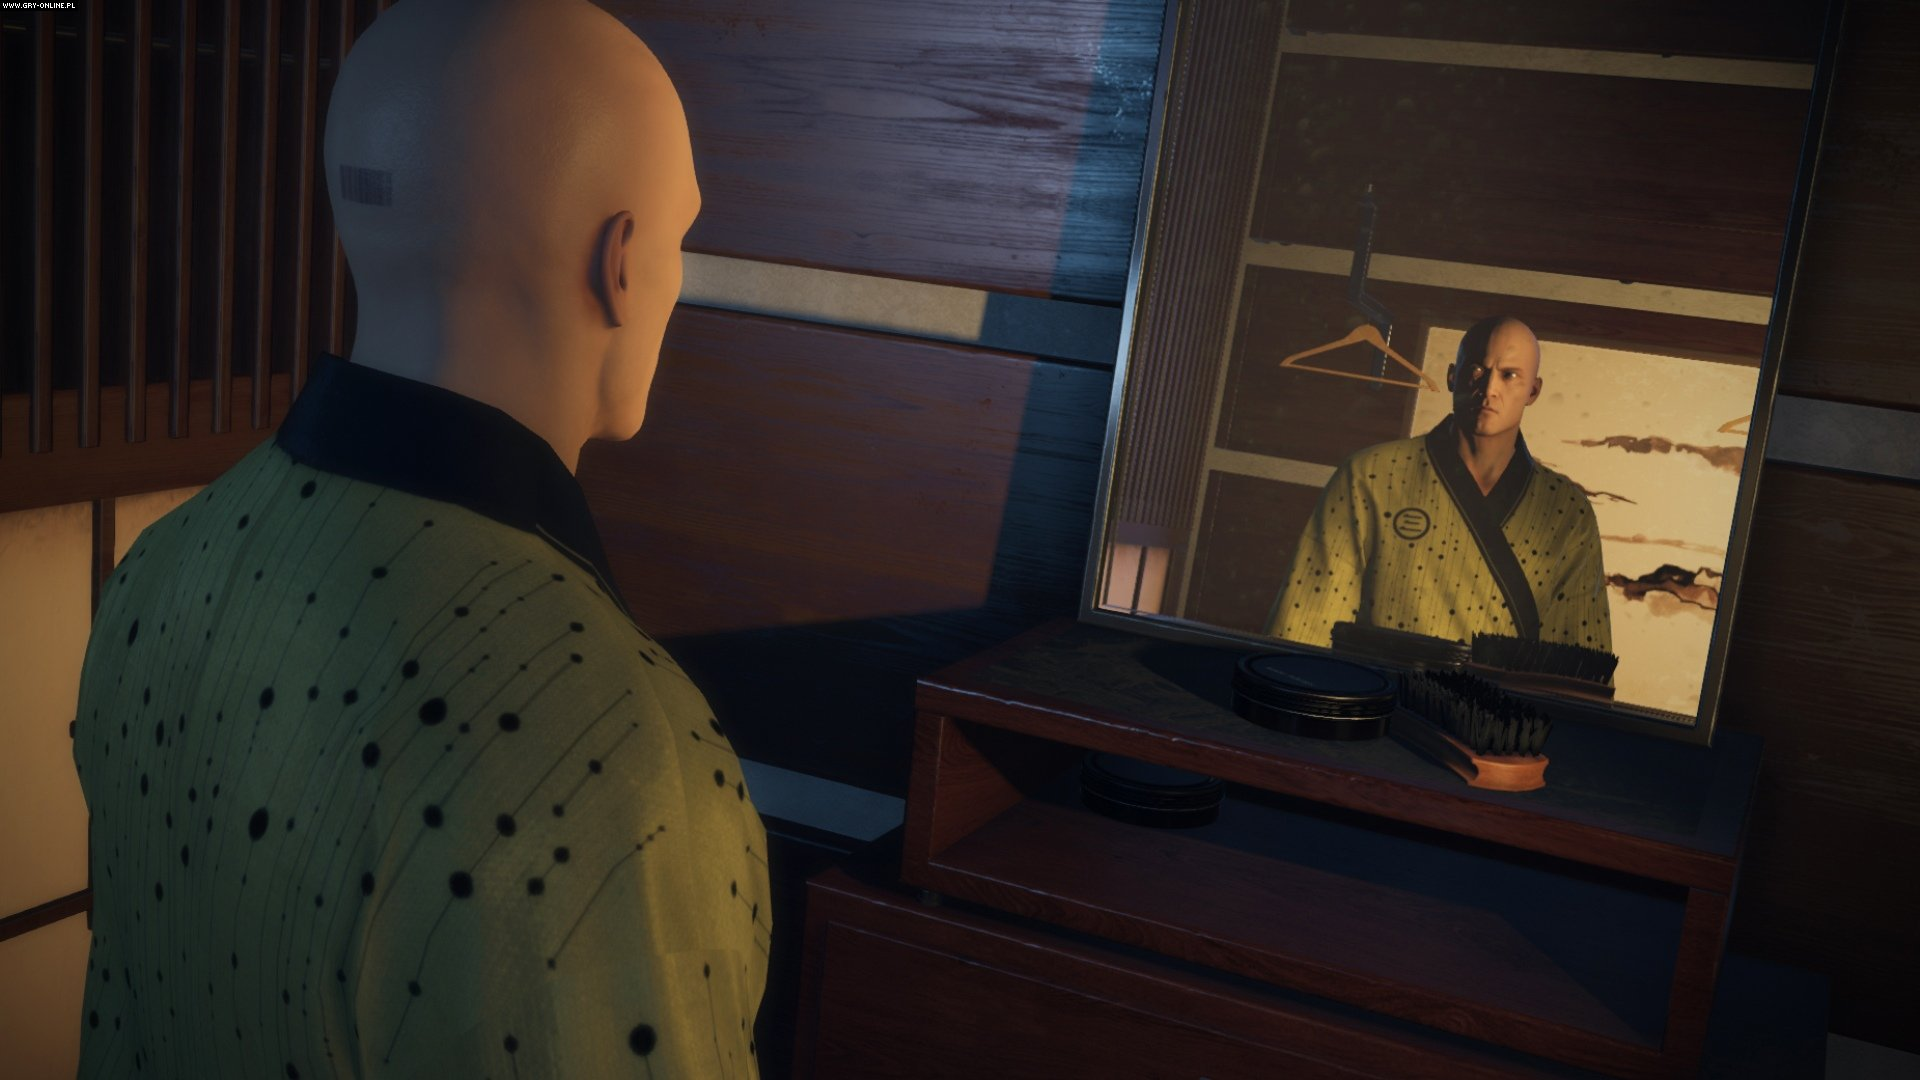 Hitman PC, PS4, XONE Gry Screen 5/63, Io-Interactive, Square-Enix / Eidos